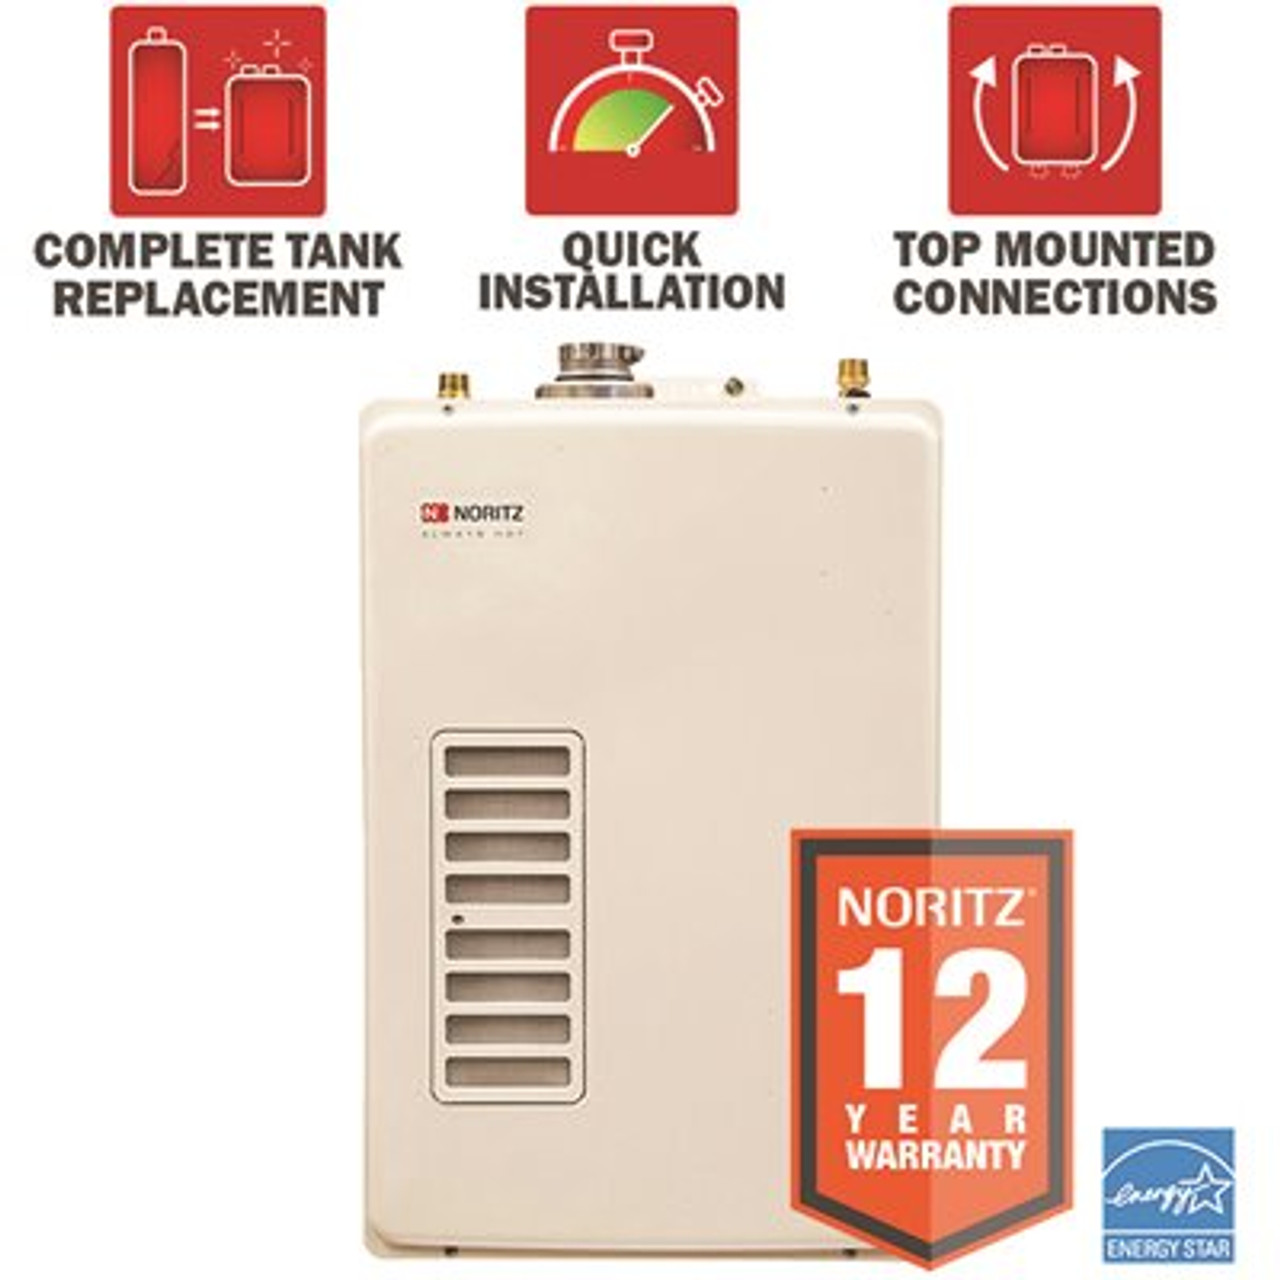 NORITZ EZTR40 40 Gal Tank Replacement Min 0.5 GPM Max 6.6 GPM High Efficiency Natural Gas Tankless Water Heater Kit